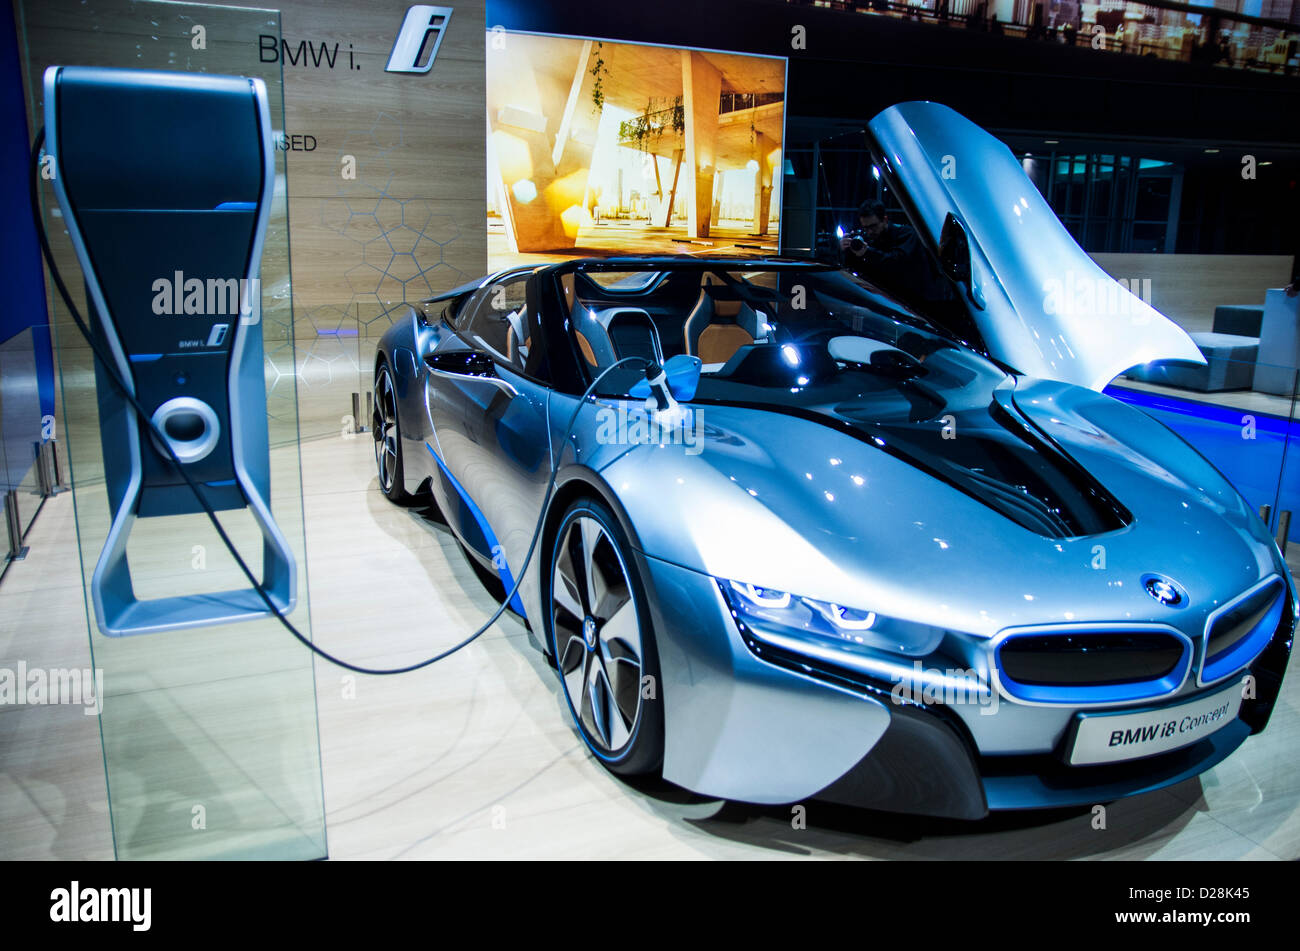 BMW I8 Concept Electric Car In American International Auto Show NAIAS 2013